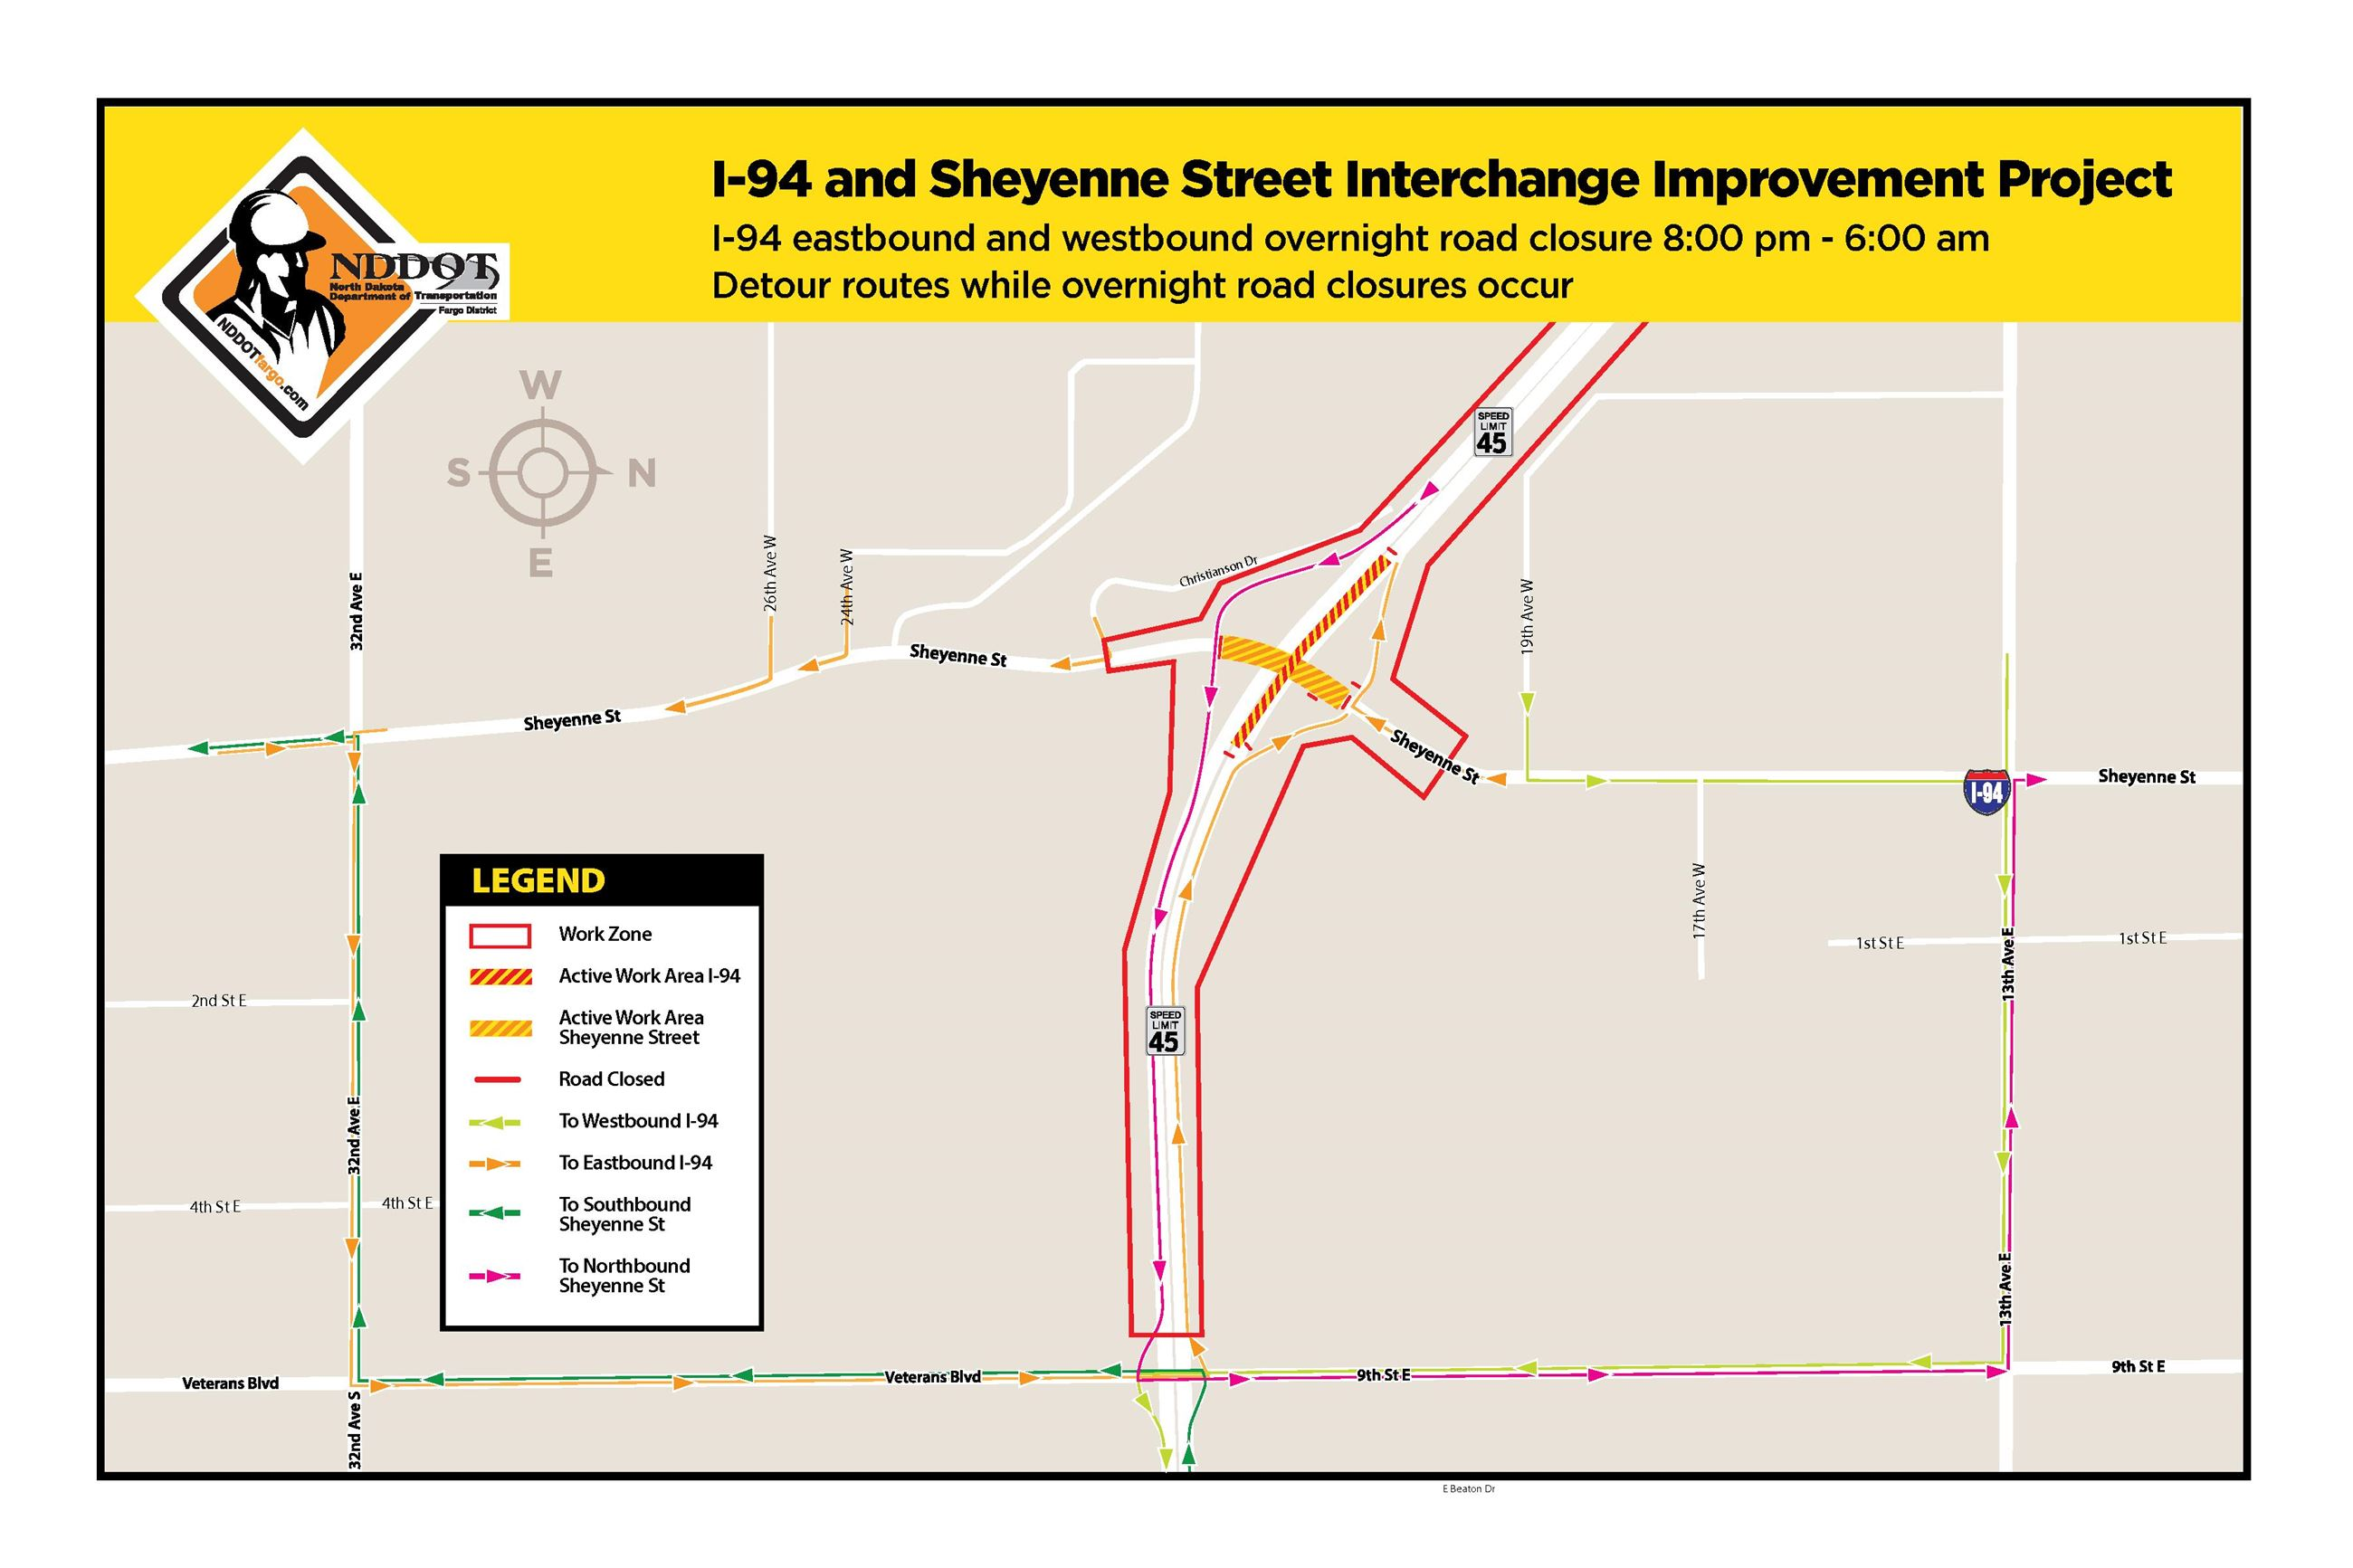 Sheyenne Street Night Closure Monday, June 4